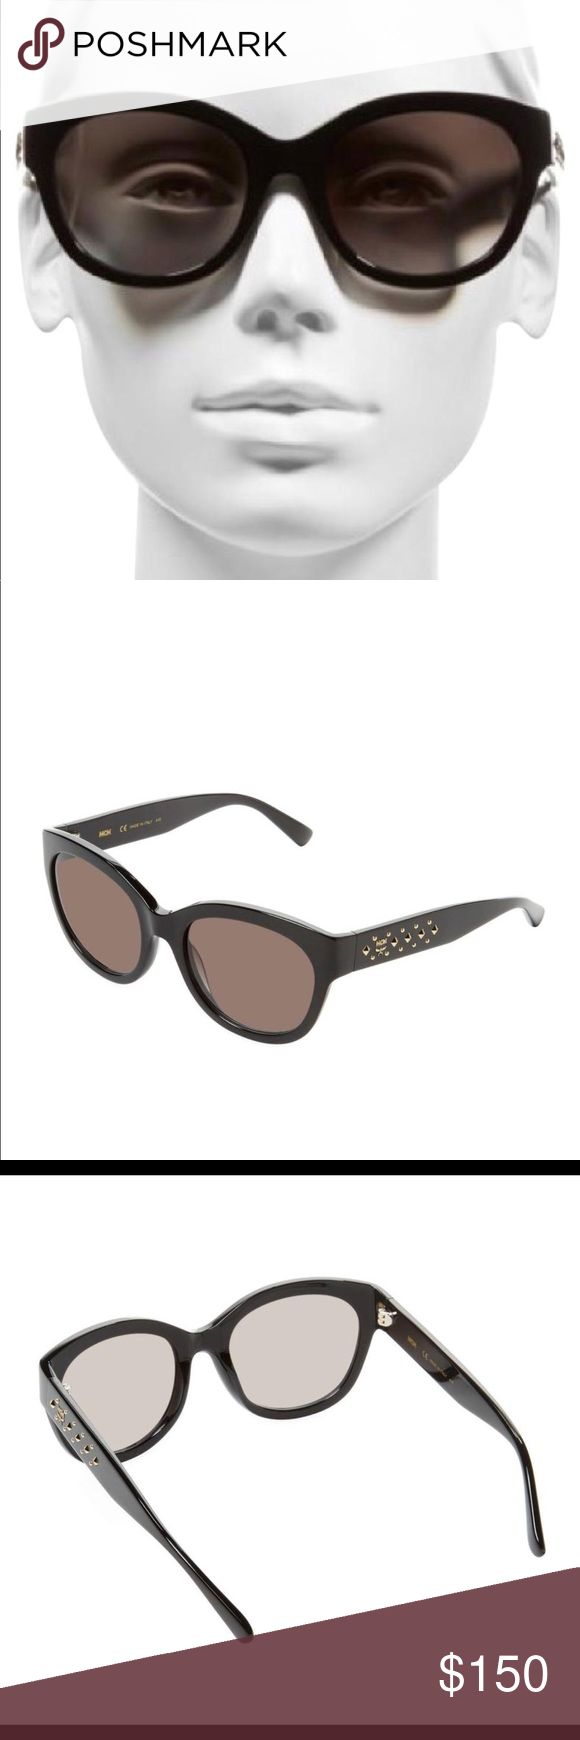 MCM Studded Oval Woman's Sunglass New Case Cloth New from MCM MCM Accessories Sunglasses